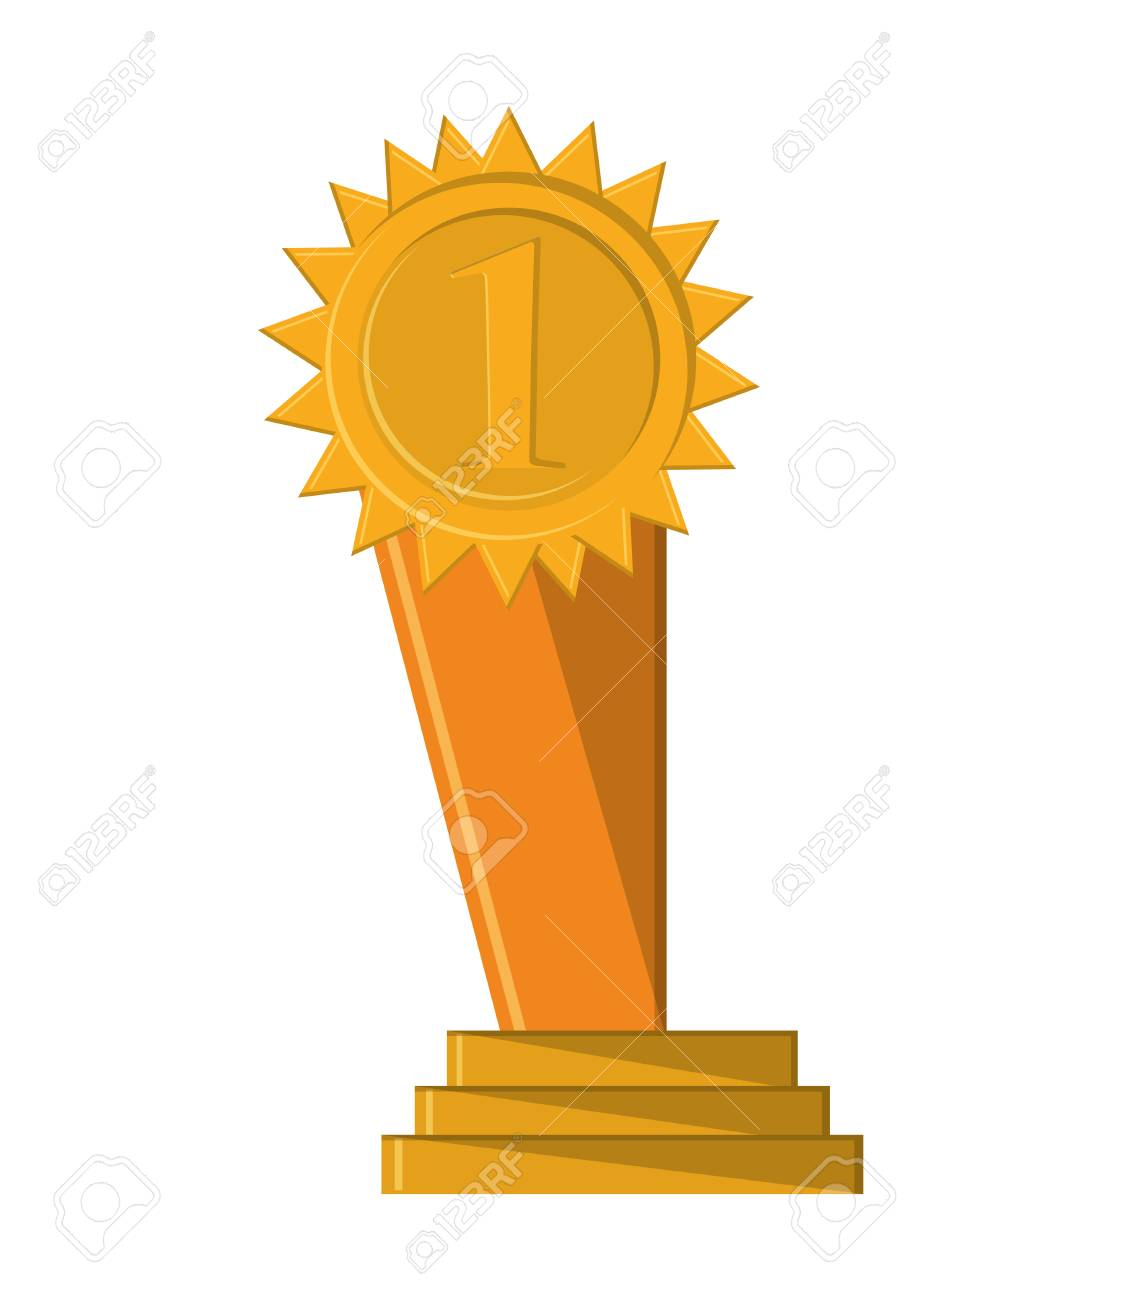 gold trophy icon  Winner competition success price and award